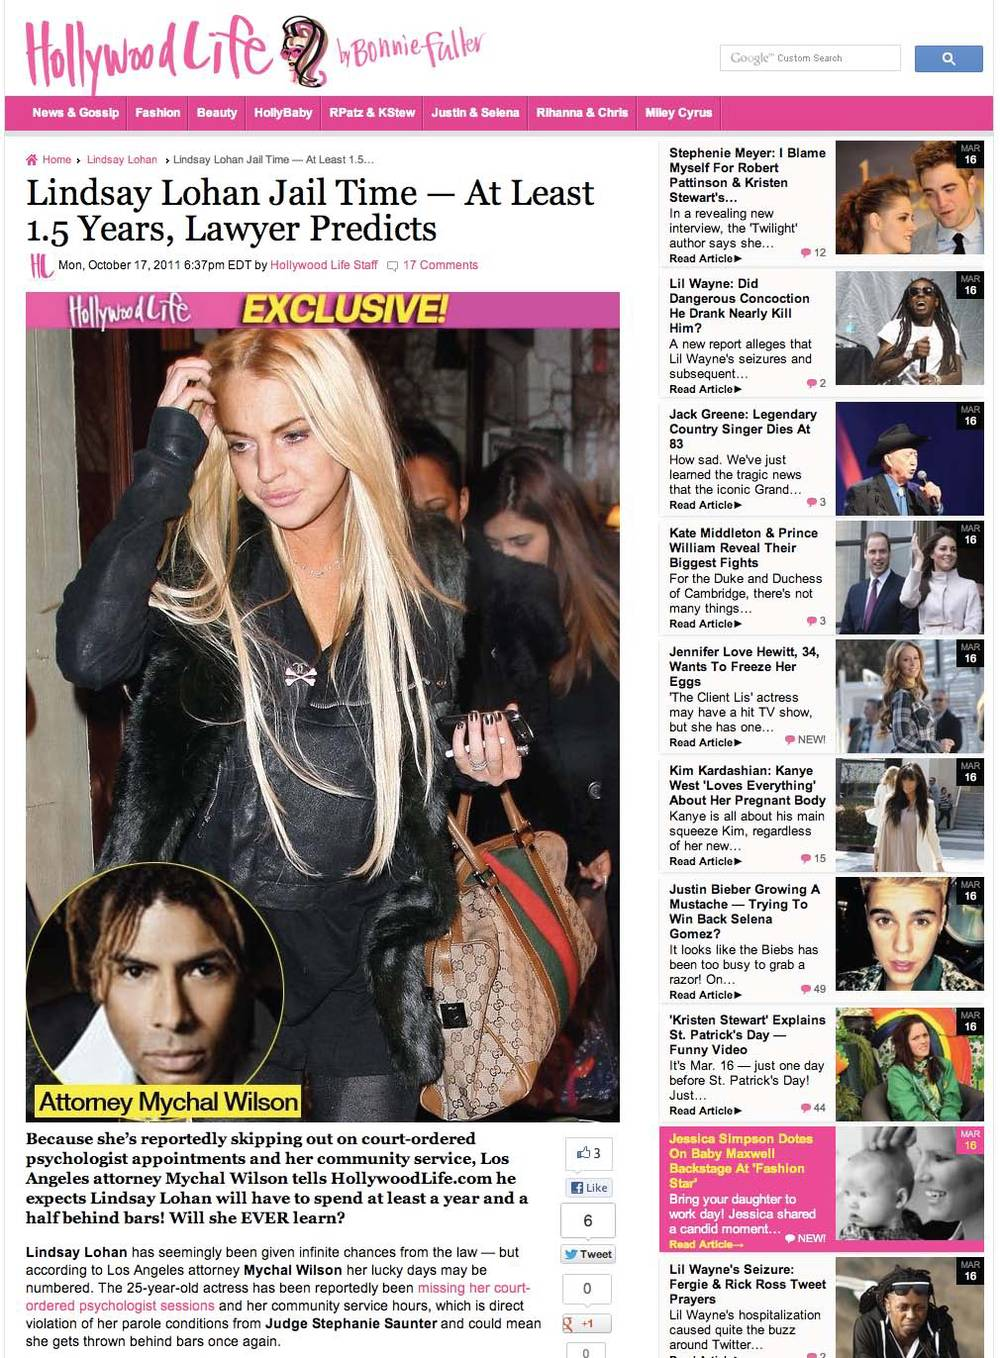 Lindsay Lohan Jail Time — At Least 1.5 Years, Lawyer Predicts_Edited.jpg